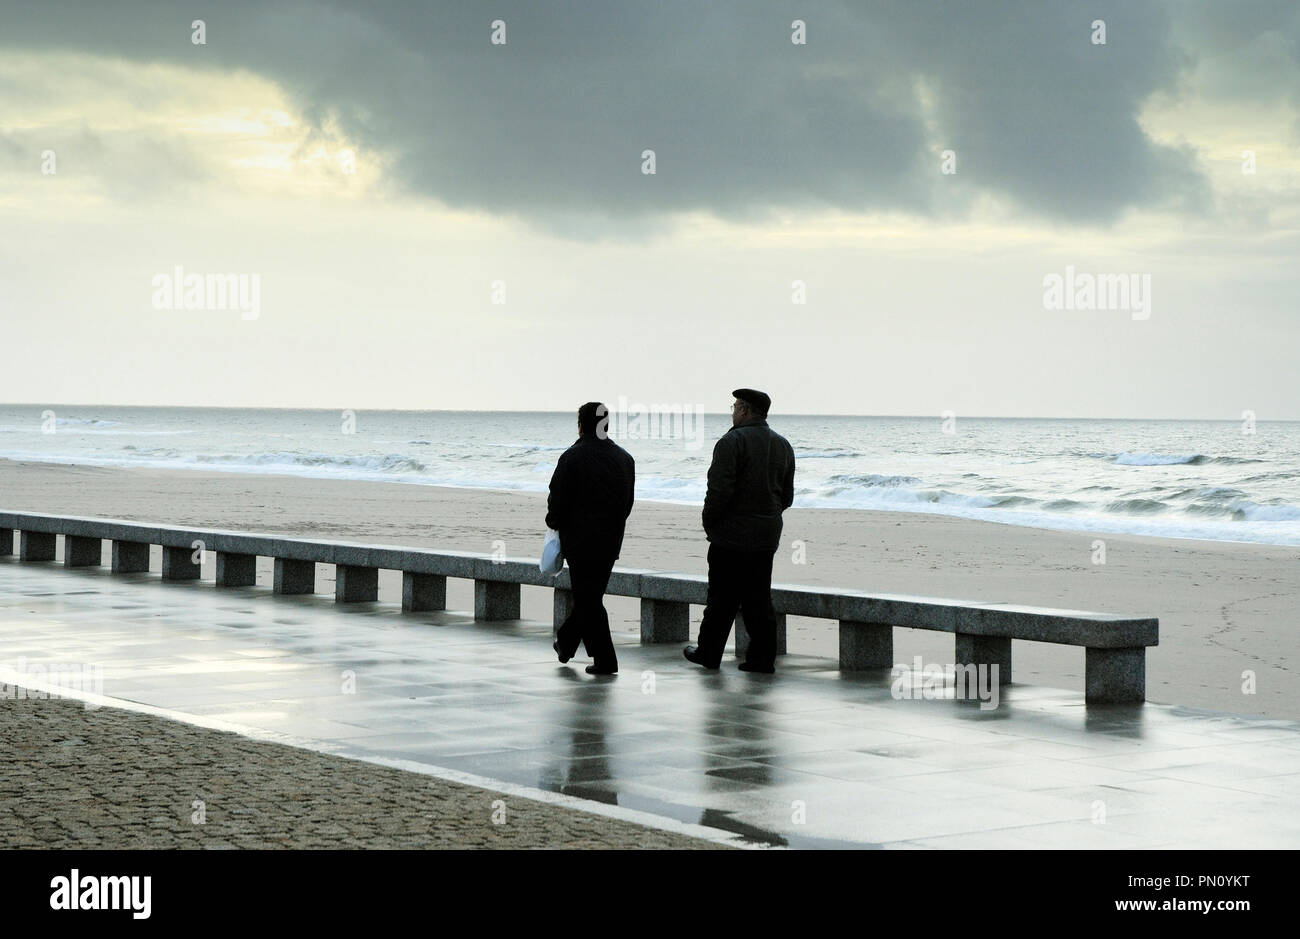 Torreira in a winter stormy day. Portugal - Stock Image